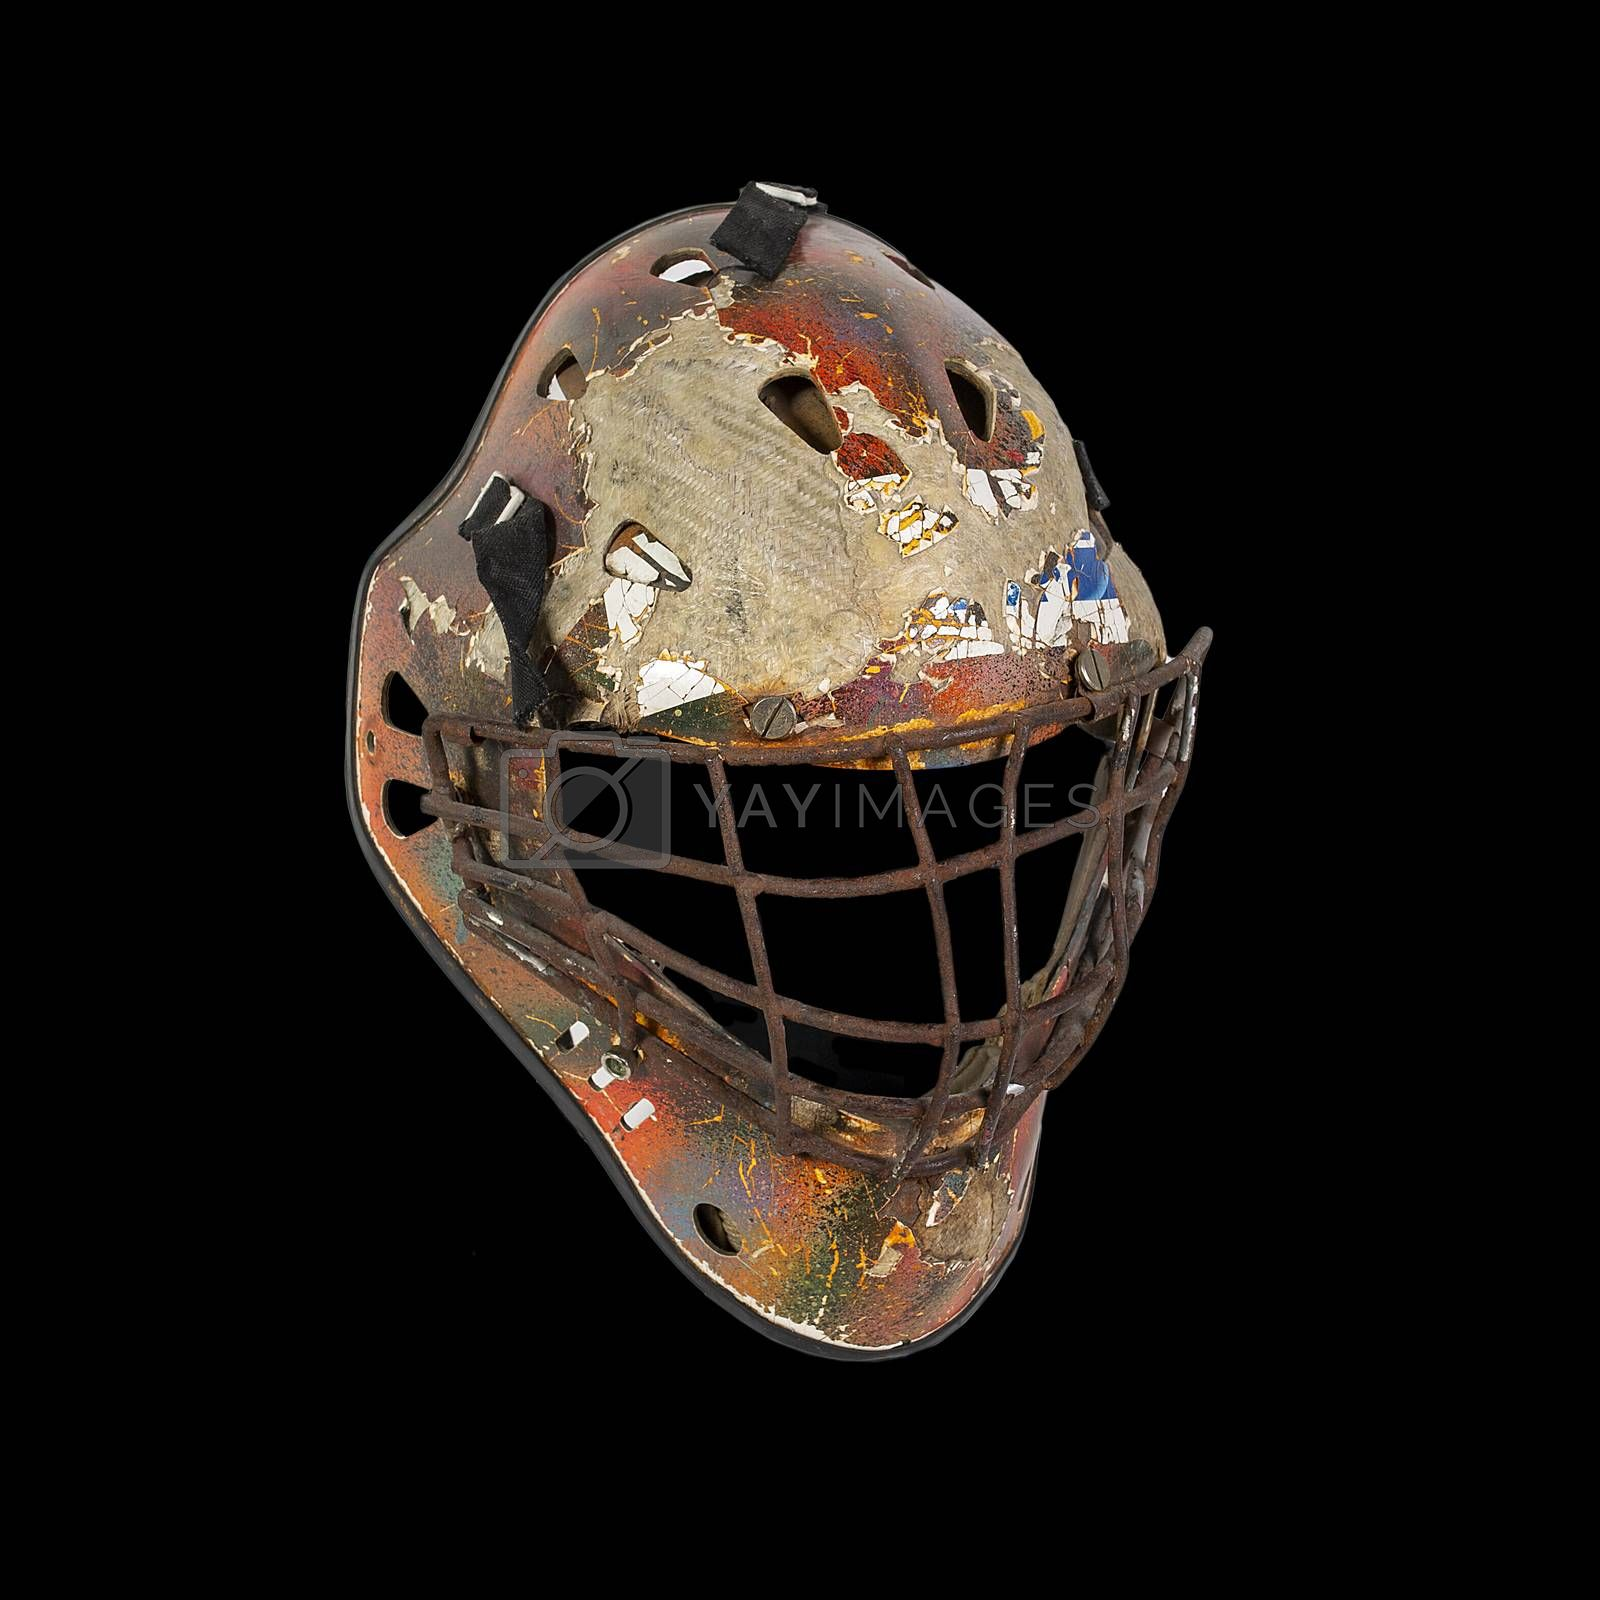 Old hockey mask for goalkeeper protection isolated on black background